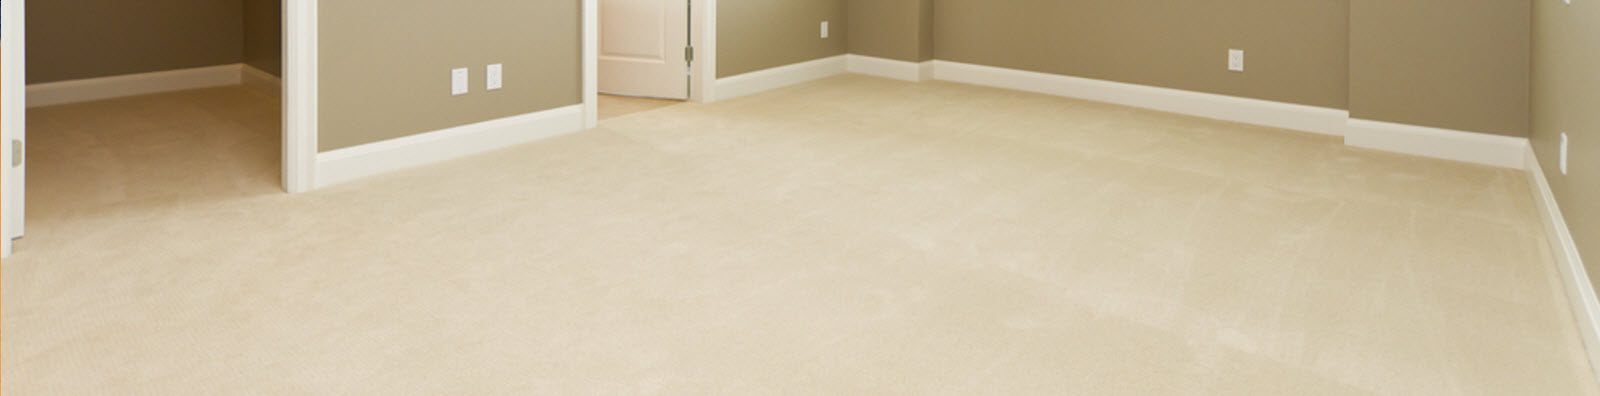 Agape Carpet Color Restoration Oklahoma City Ok